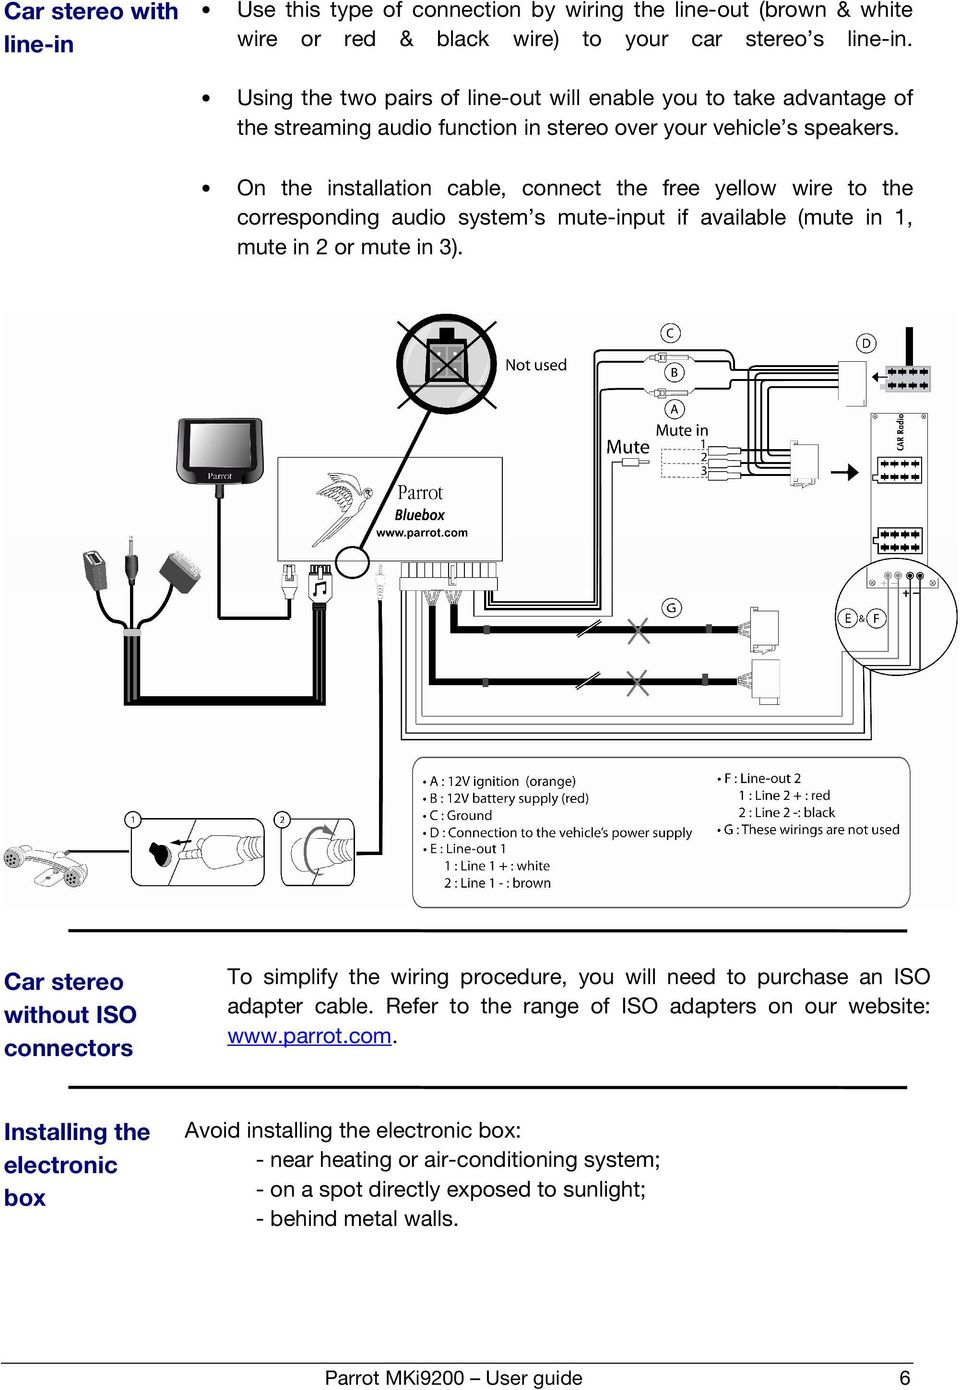 User Guide Parrot Mki9200 English 1 Pdf Wiring Diagram Nokia Car Kit On The Installation Cable Connect Free Yellow Wire To Corresponding Audio System S